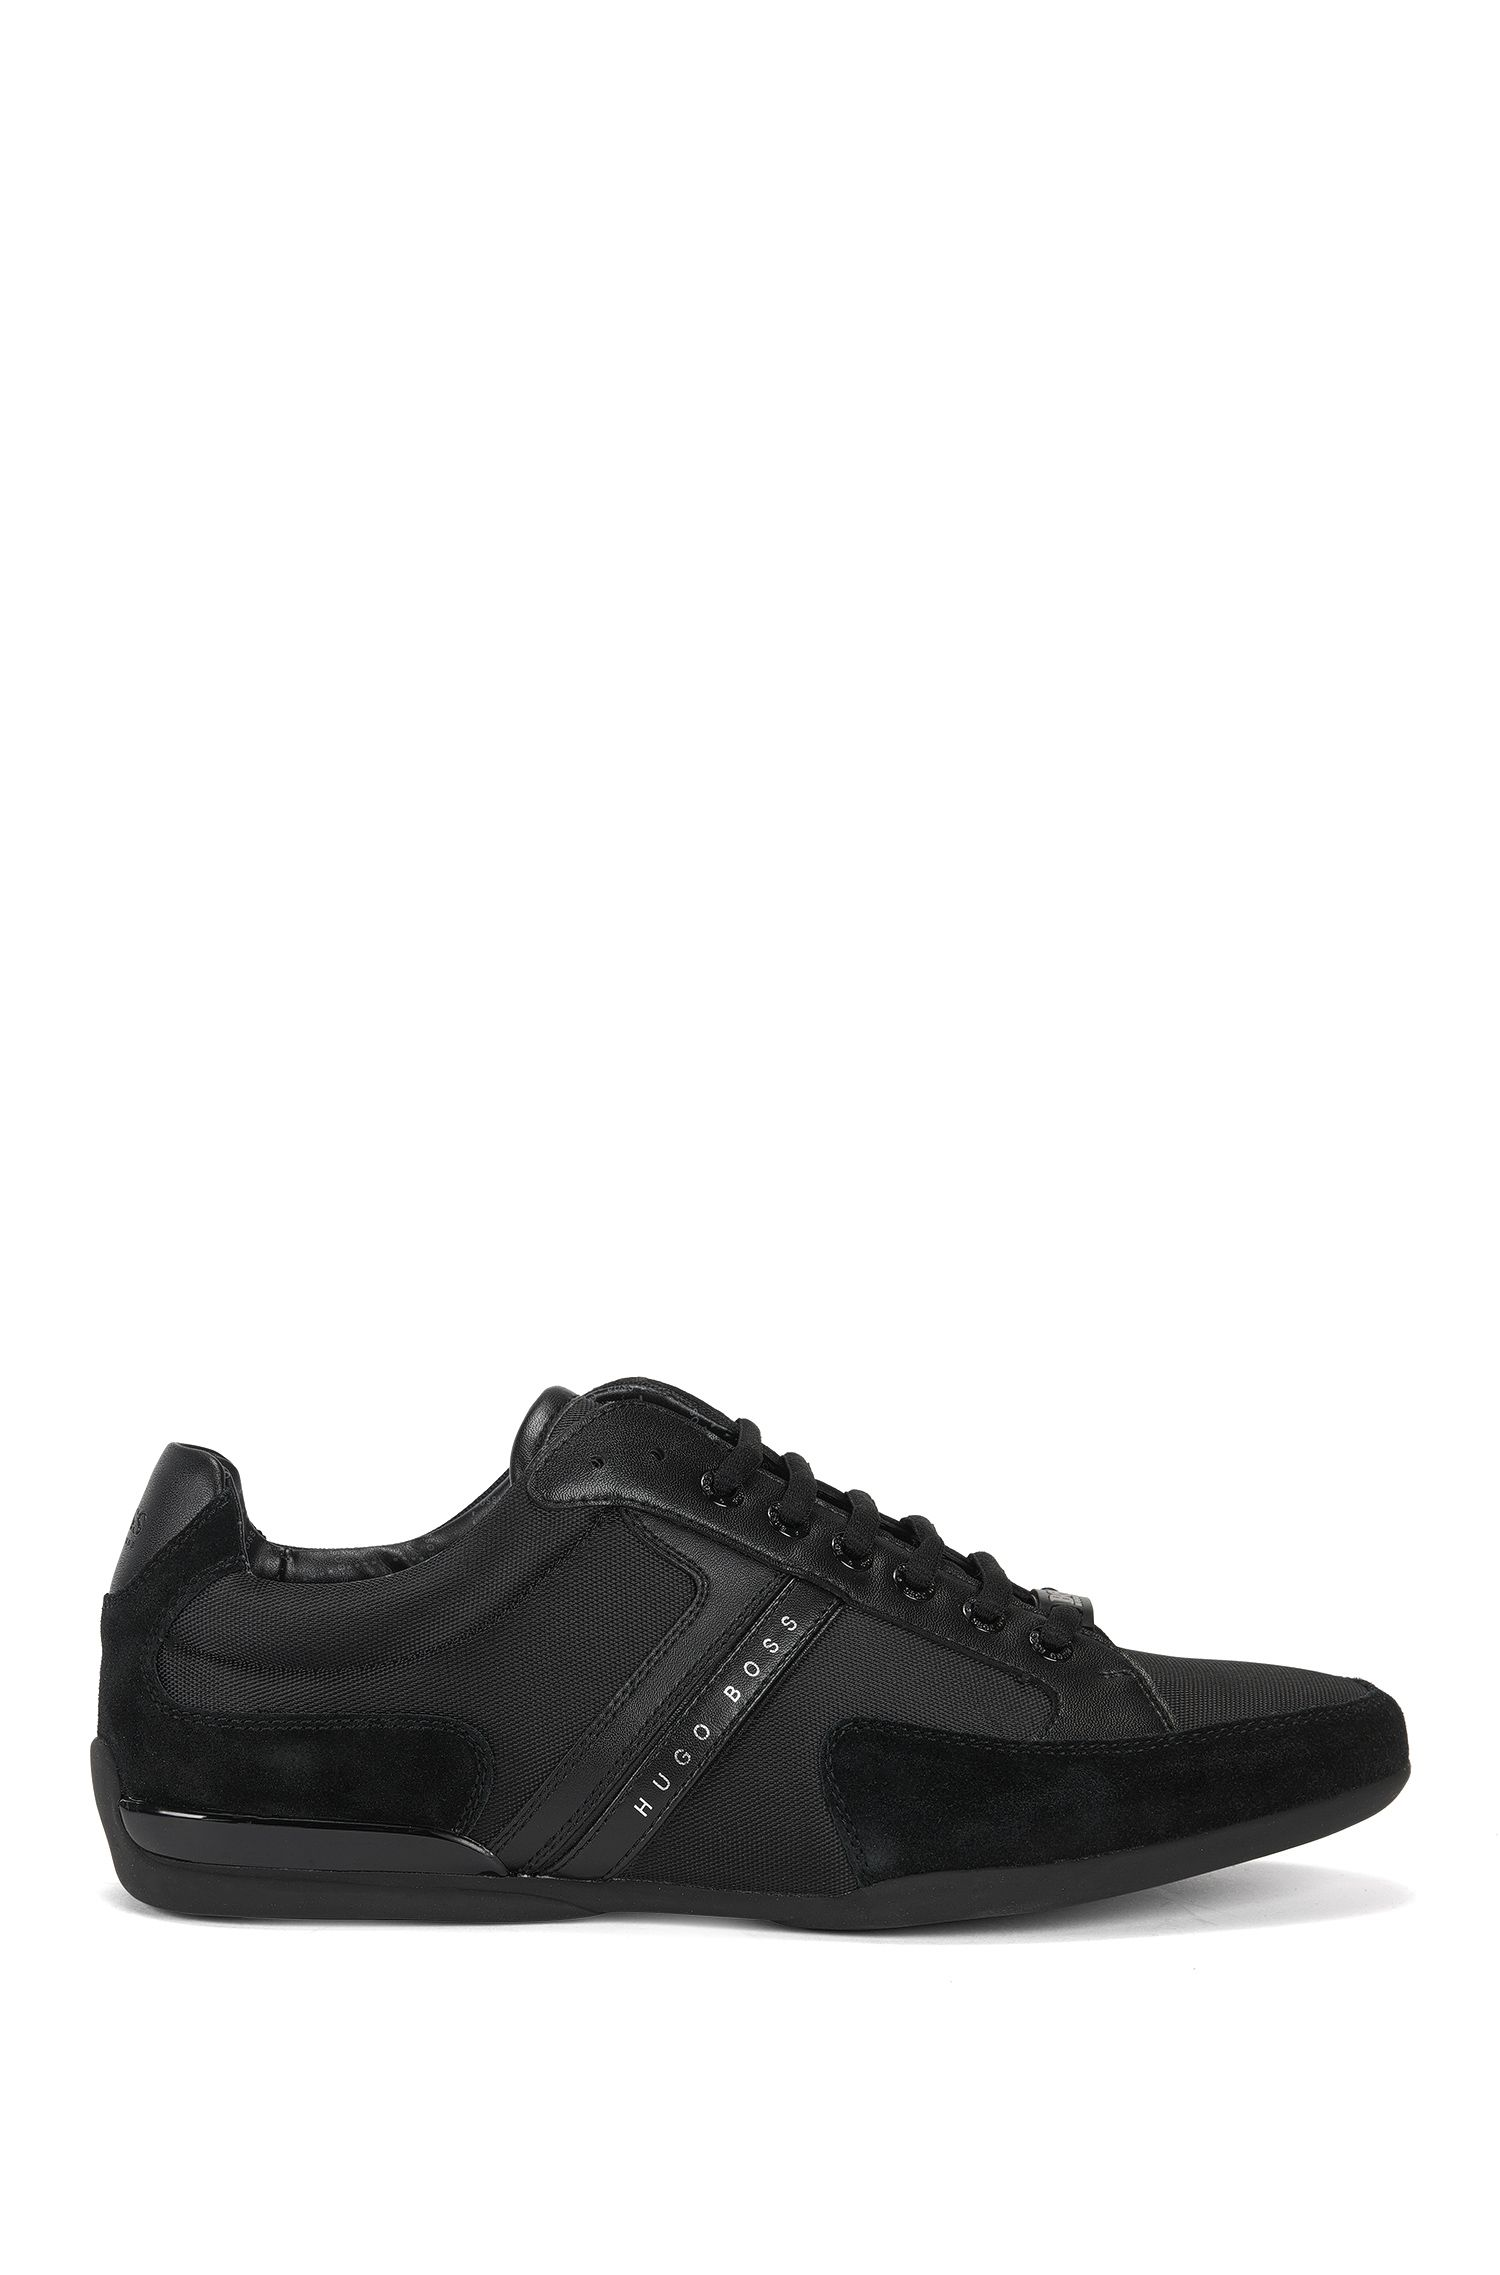 BOSS Hugo Boss Material-mix sneakers rubber sole 10 Black